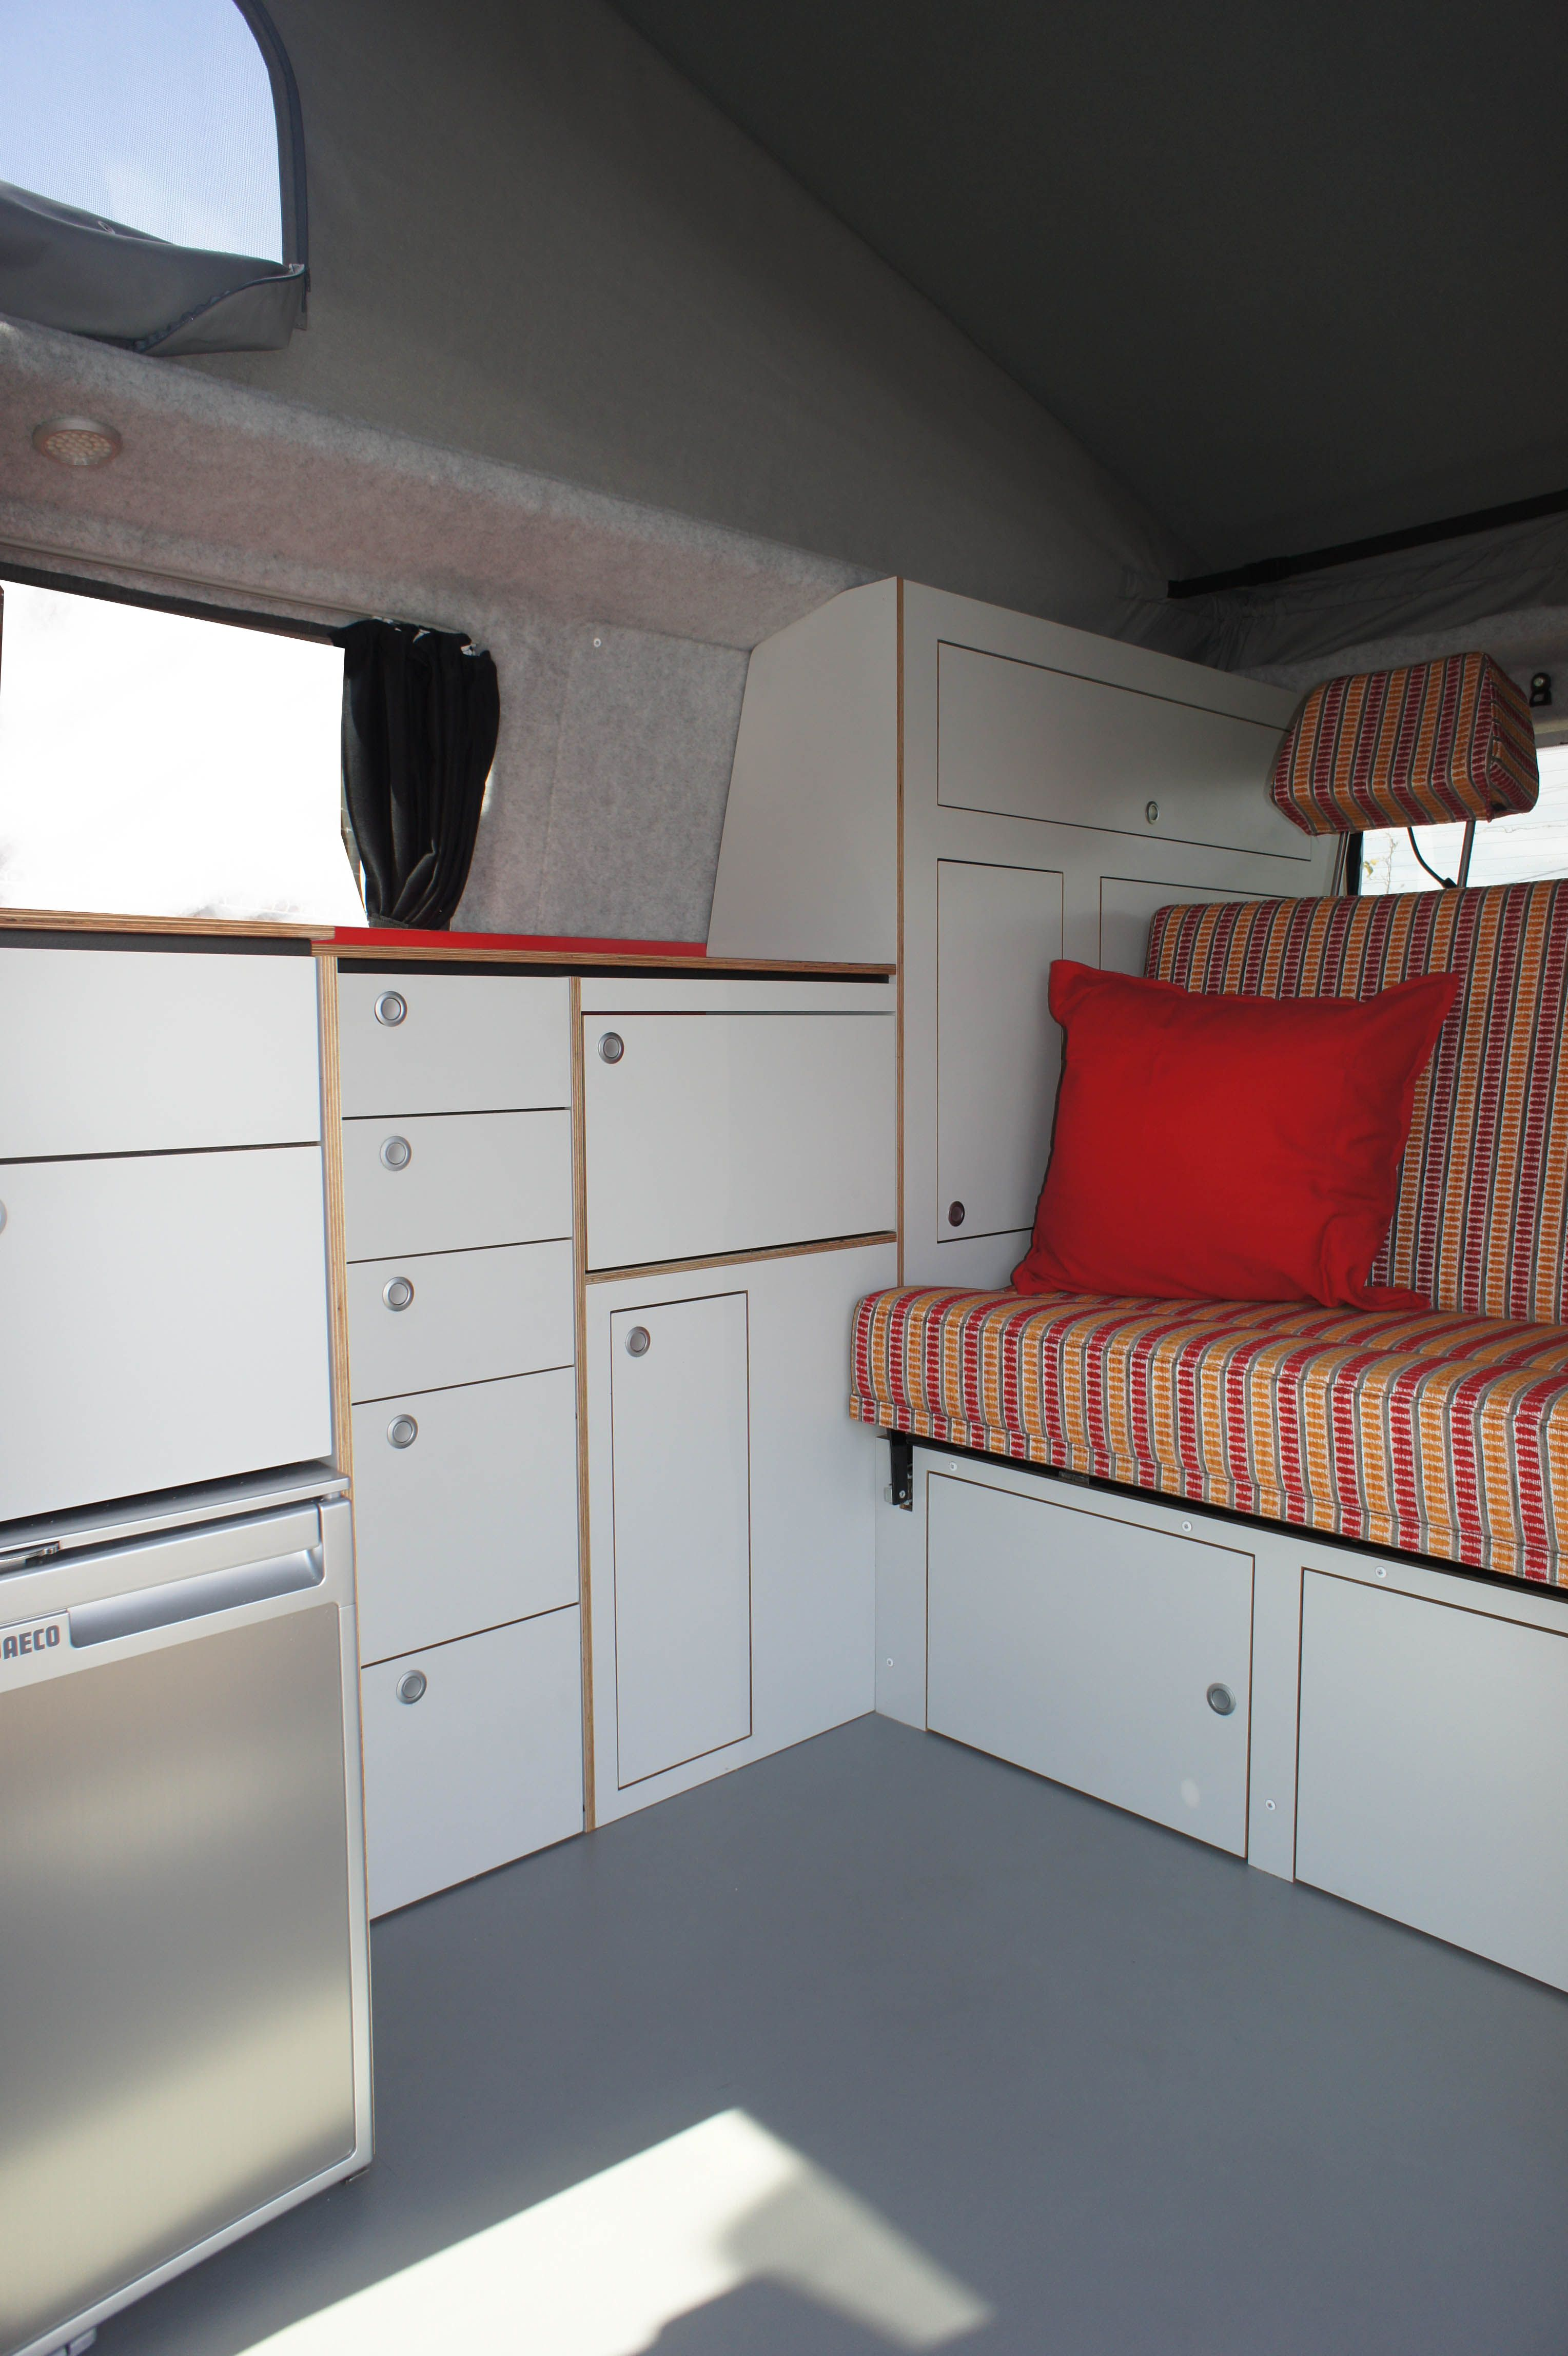 VW T5 Campervan conversion by Achtung Camper in Victoria